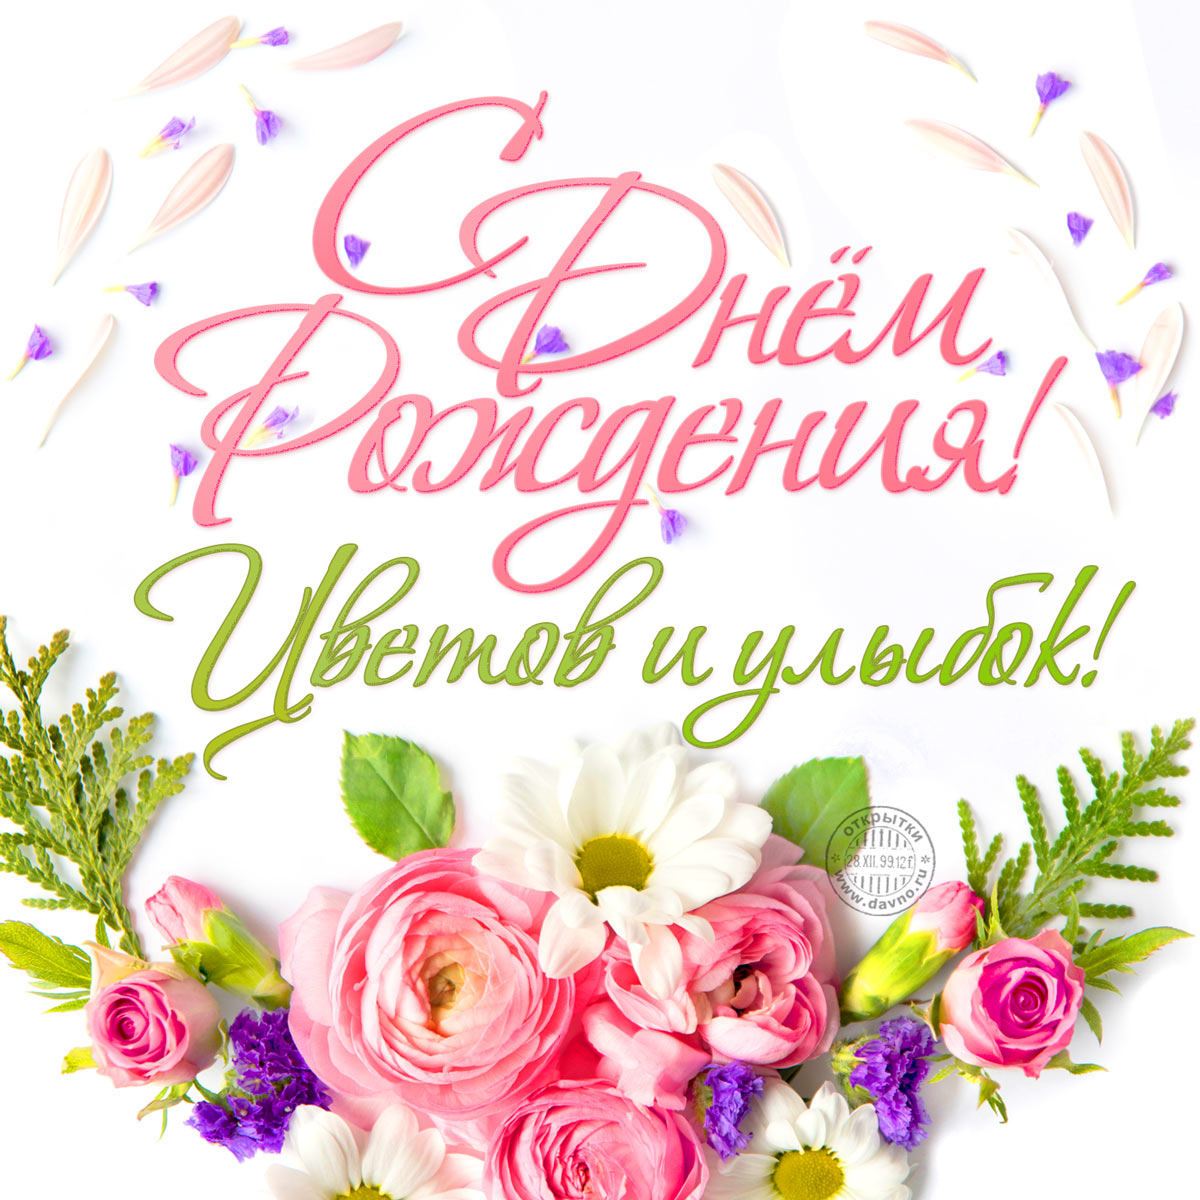 https://www.davno.ru/assets/images/cards/big/birthday-1208.jpg